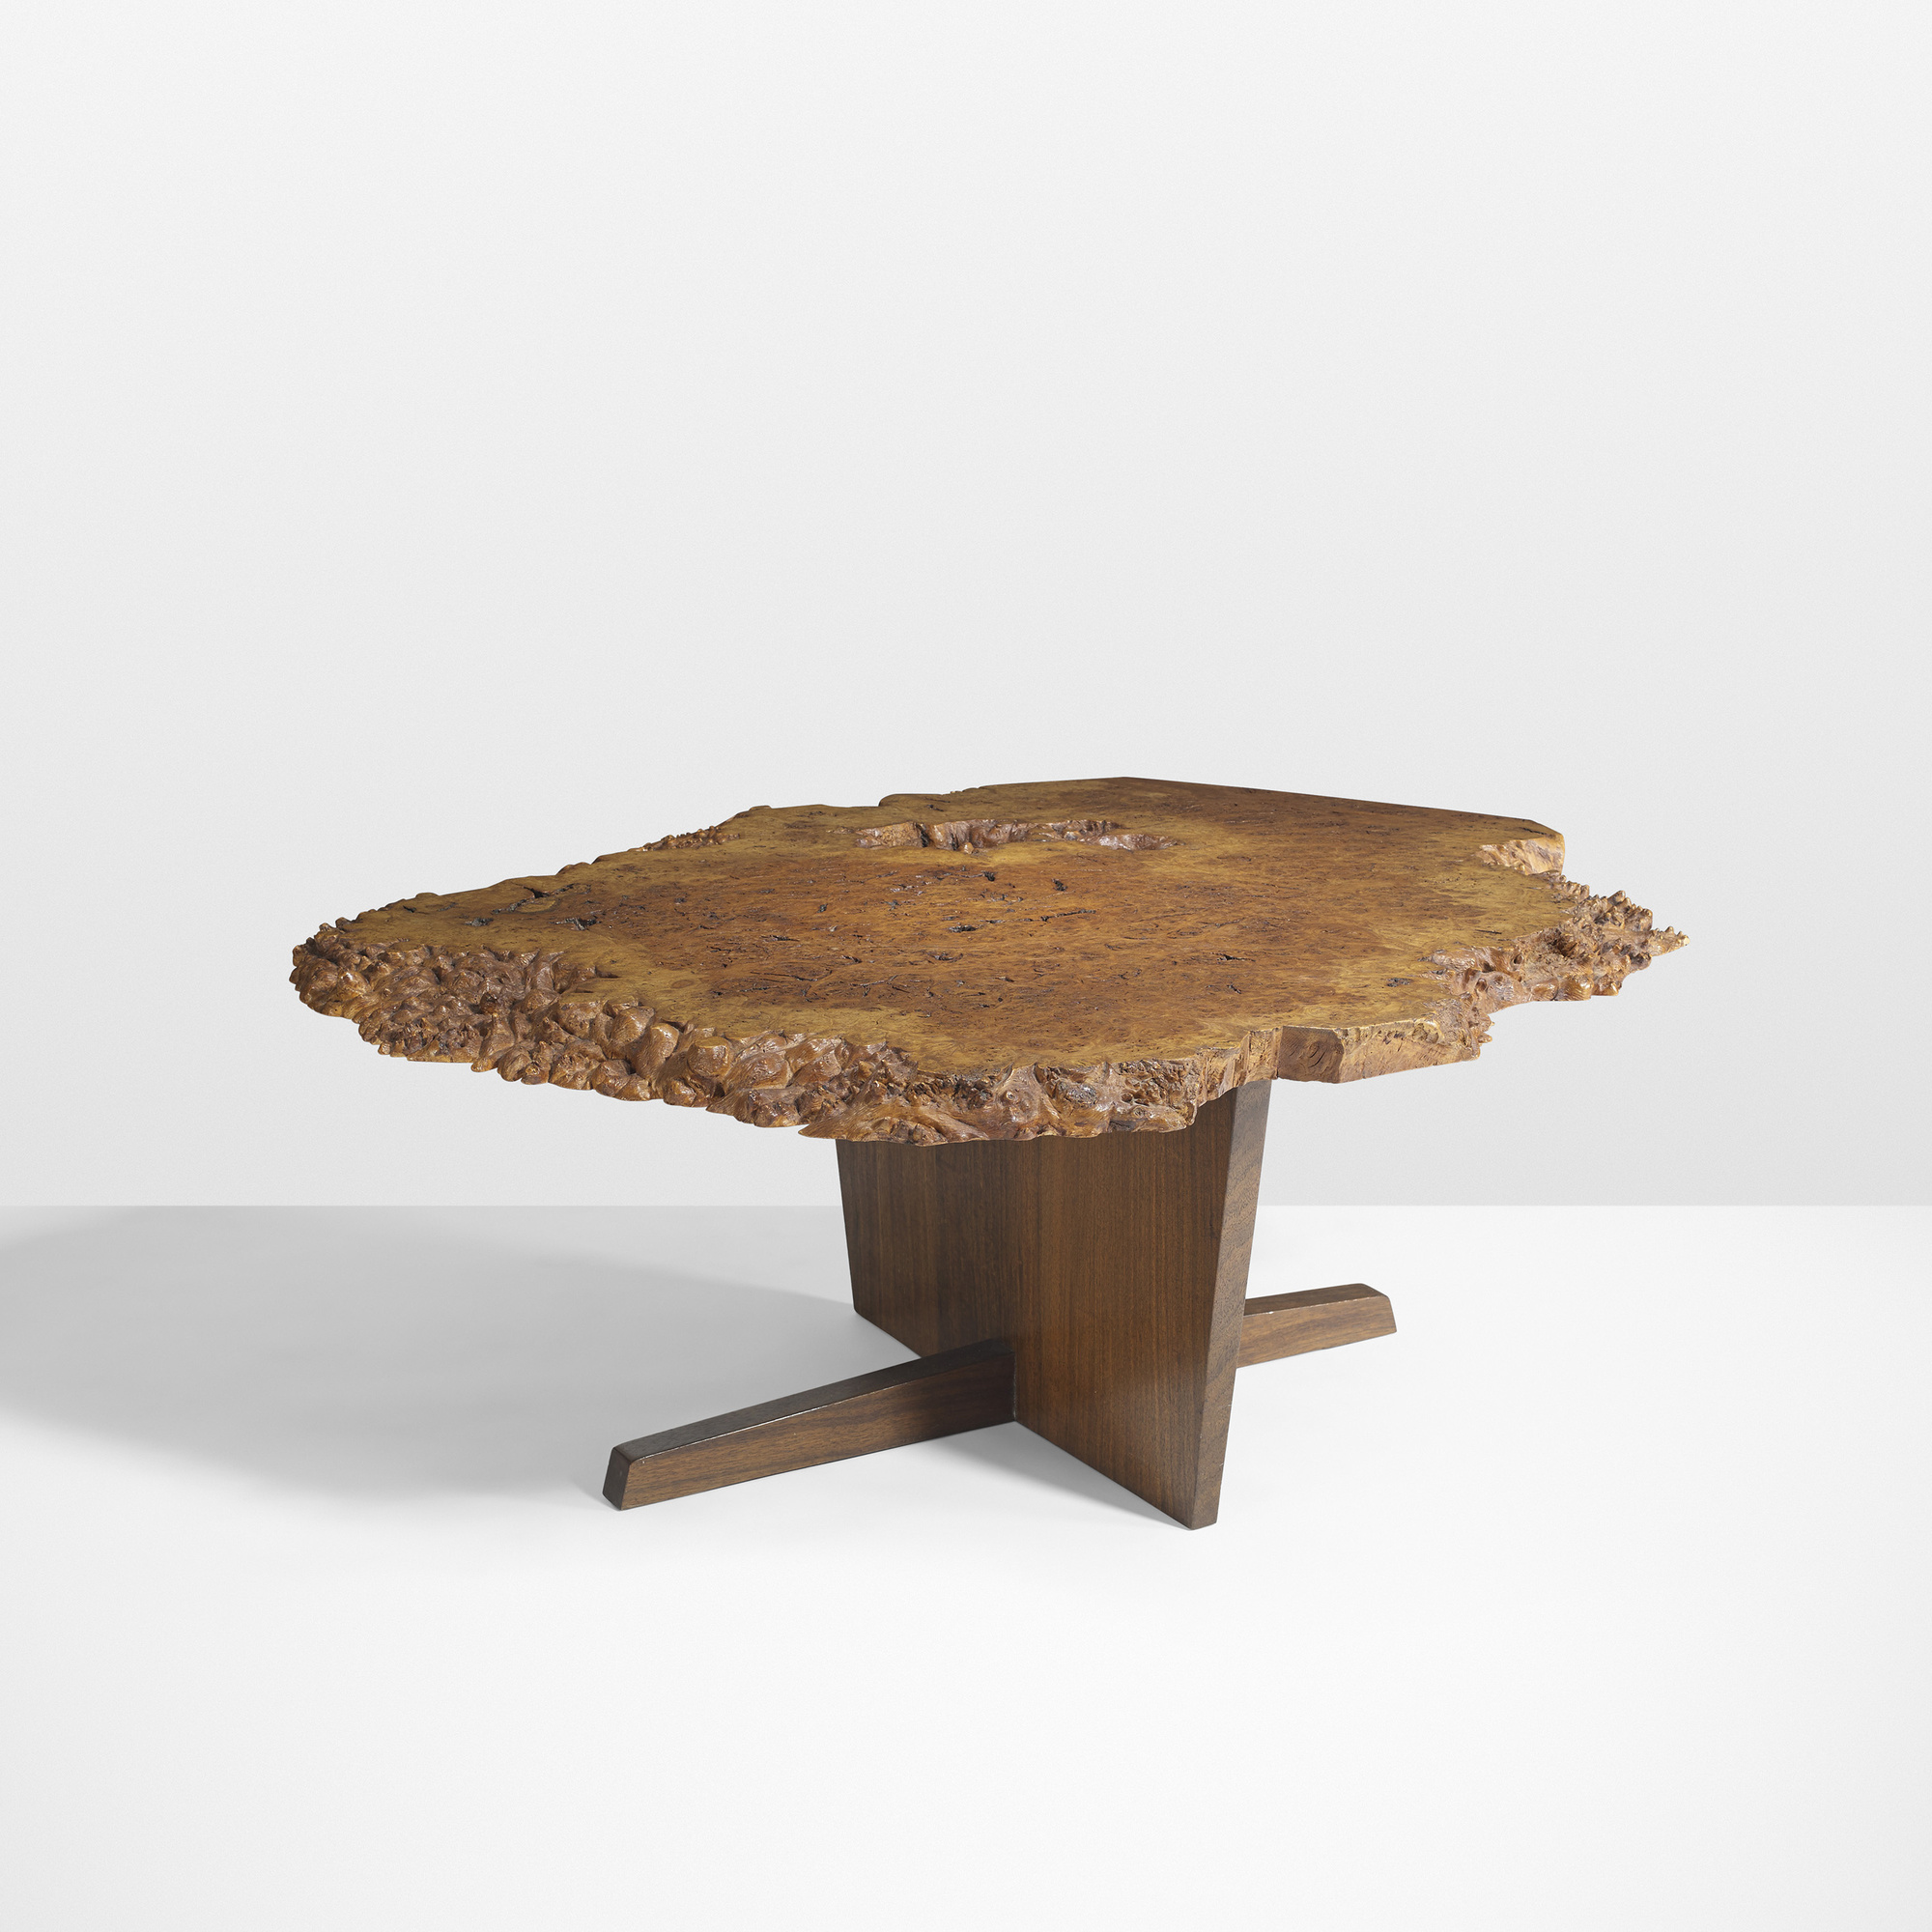 4: George Nakashima / Important Minguren I Coffee Table (1 Of 4)